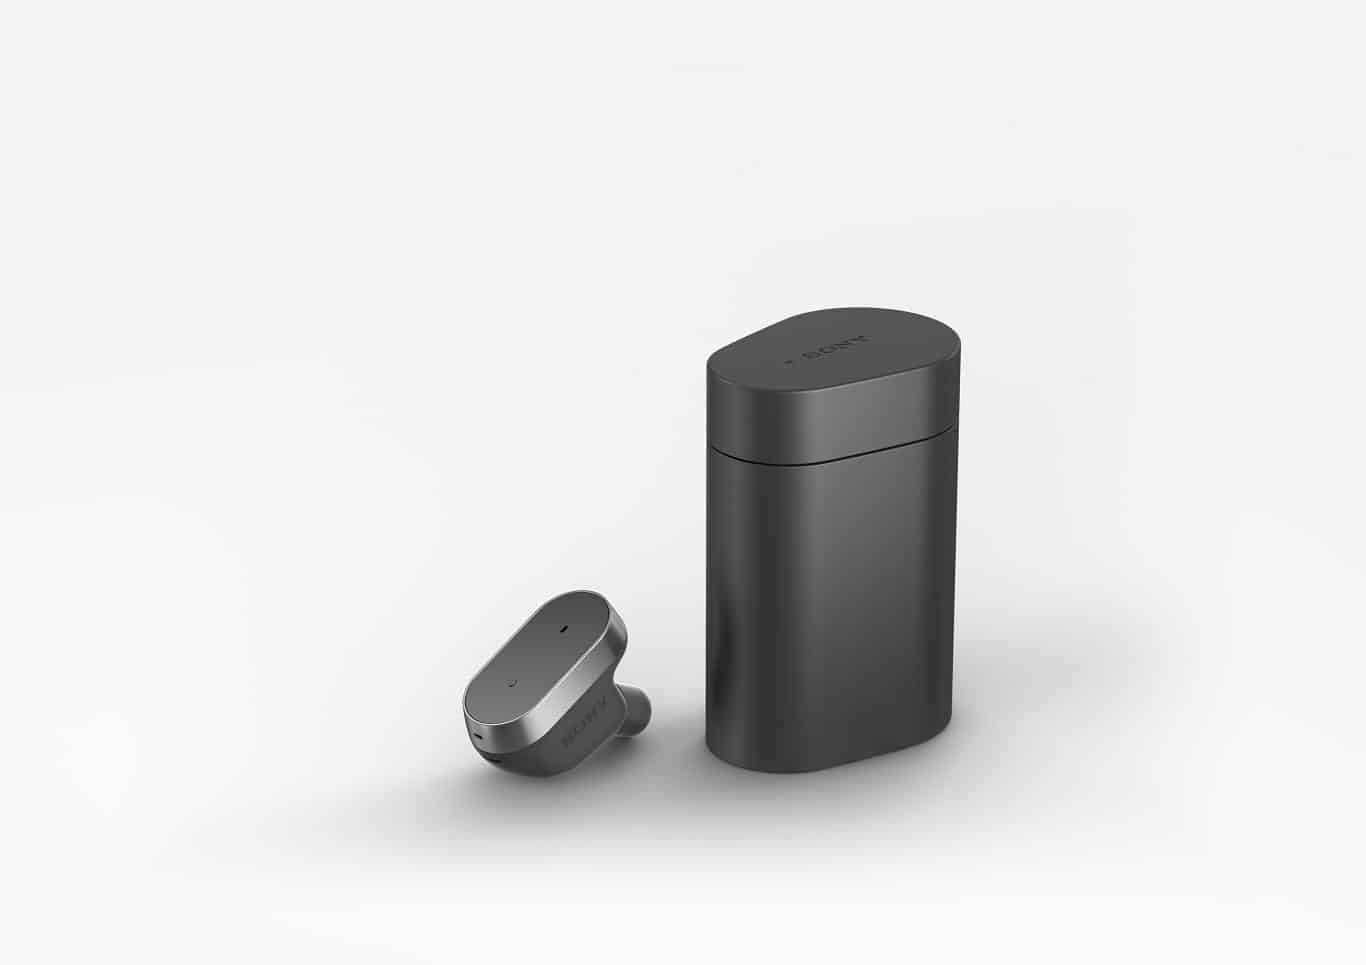 Sony Xperia Ear 1